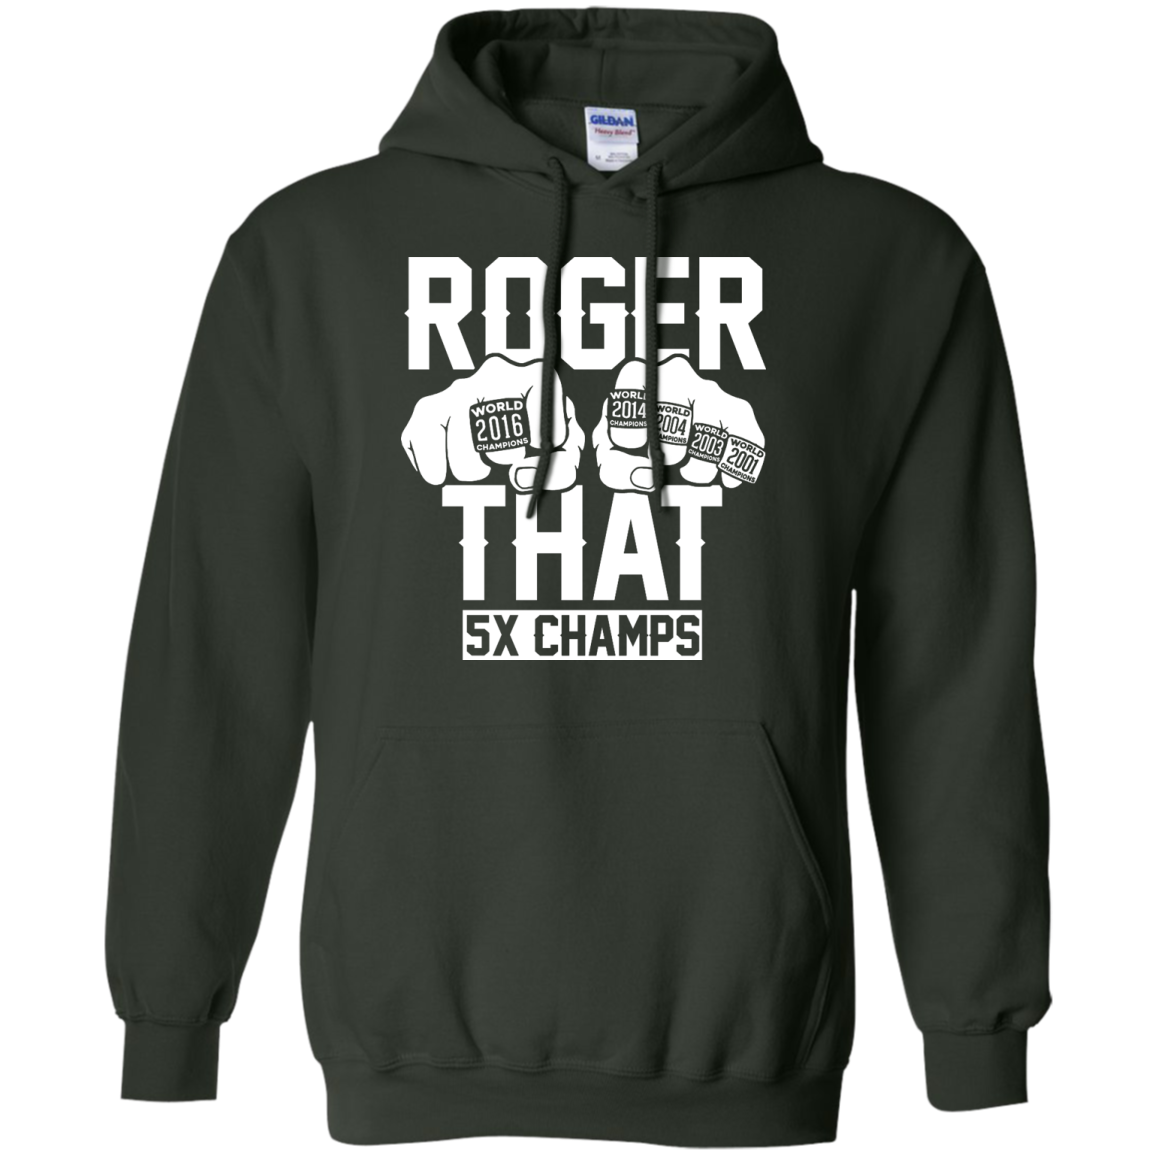 image 845px Roger That 5x Champs – Brady Trolls Goodell T Shirts